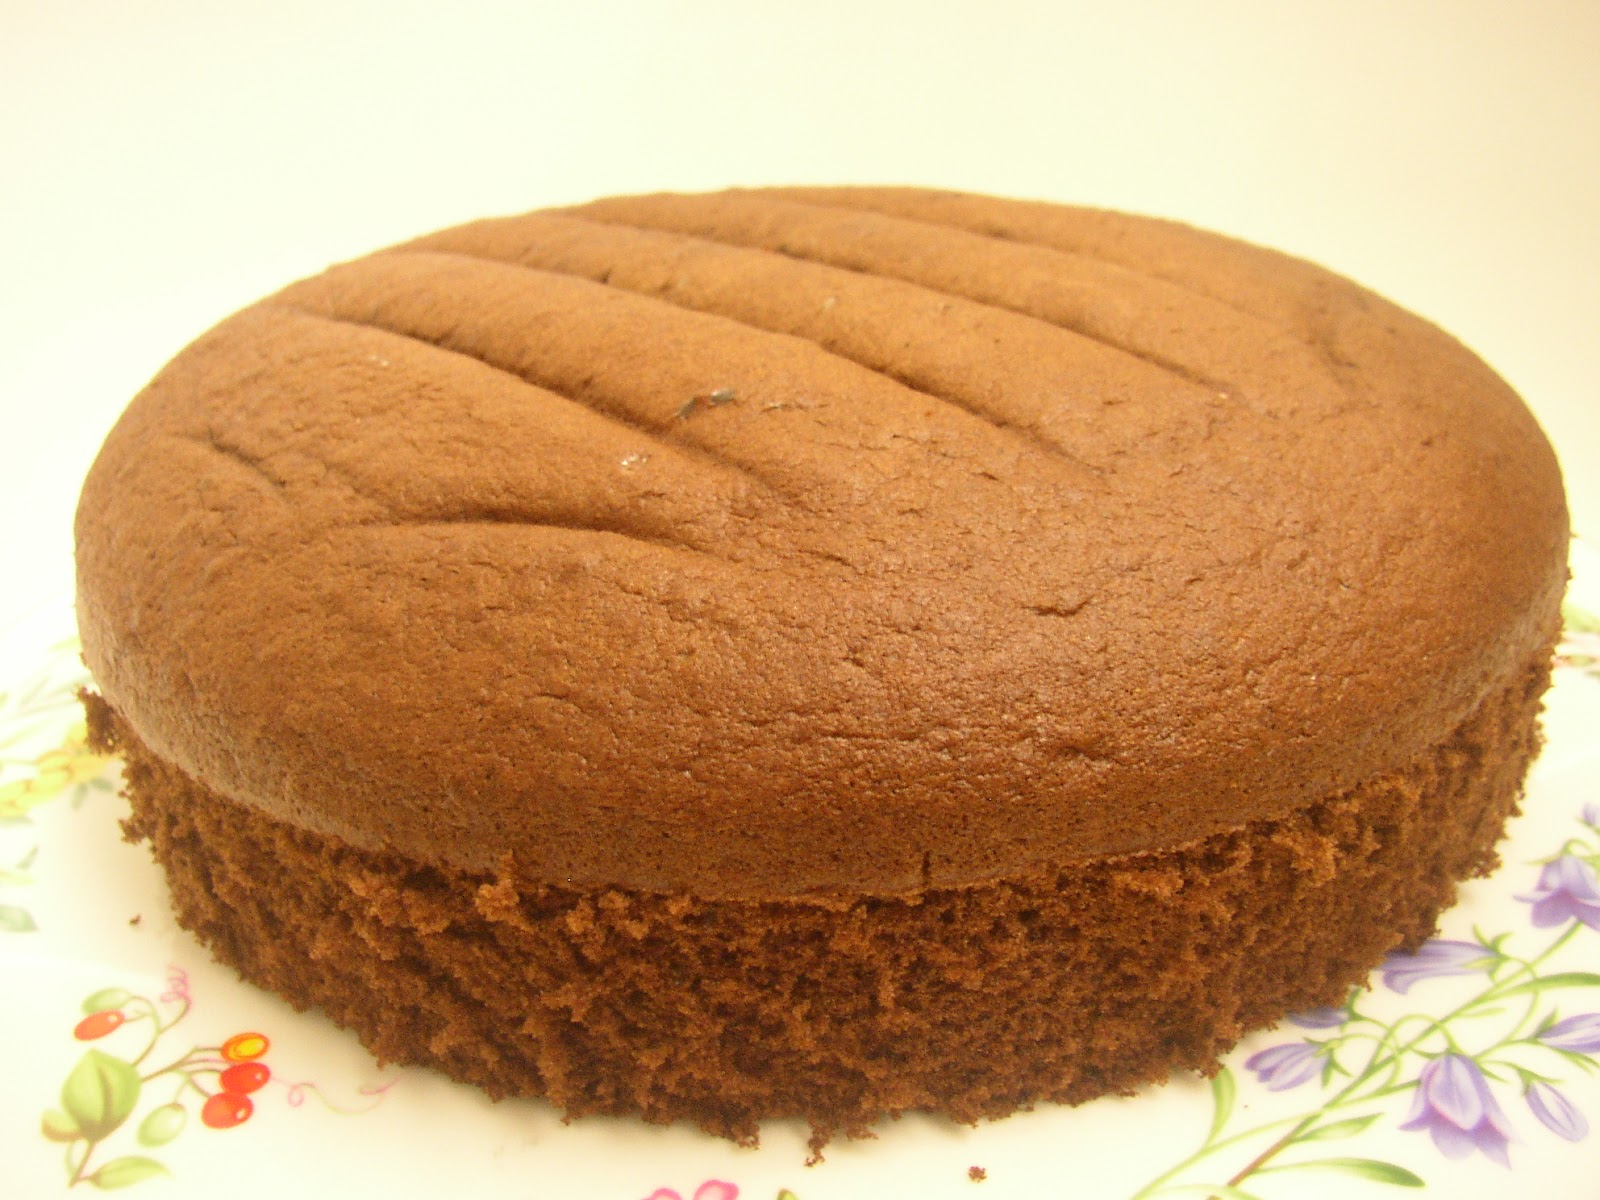 Sponge Cake Artinya : Life Is An Illusion: Chocolate Sponge Cake